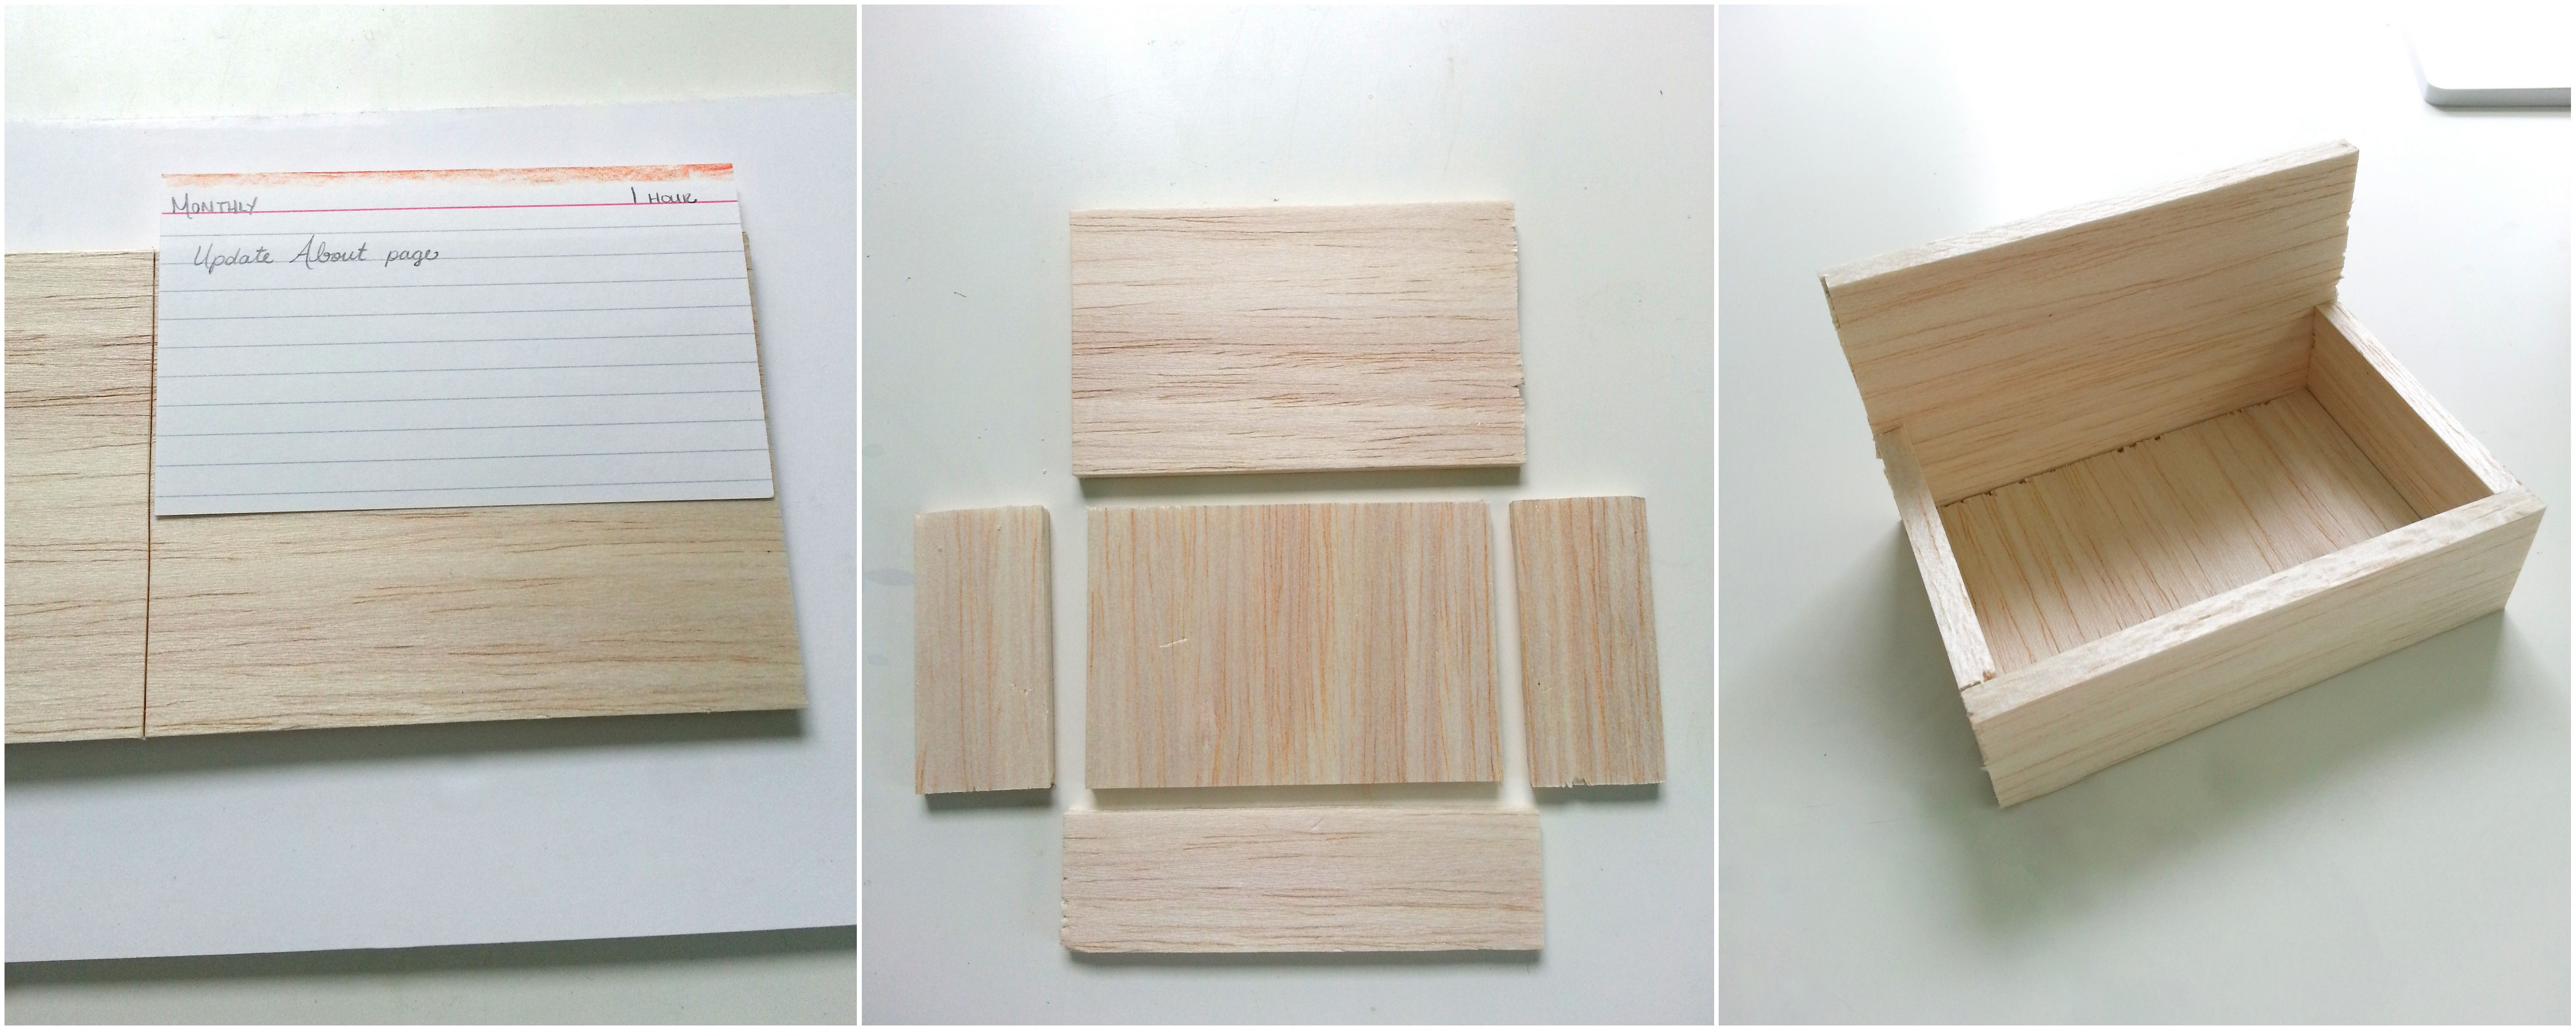 Orderly housekeeping and another failed project little for Wooden box tutorial